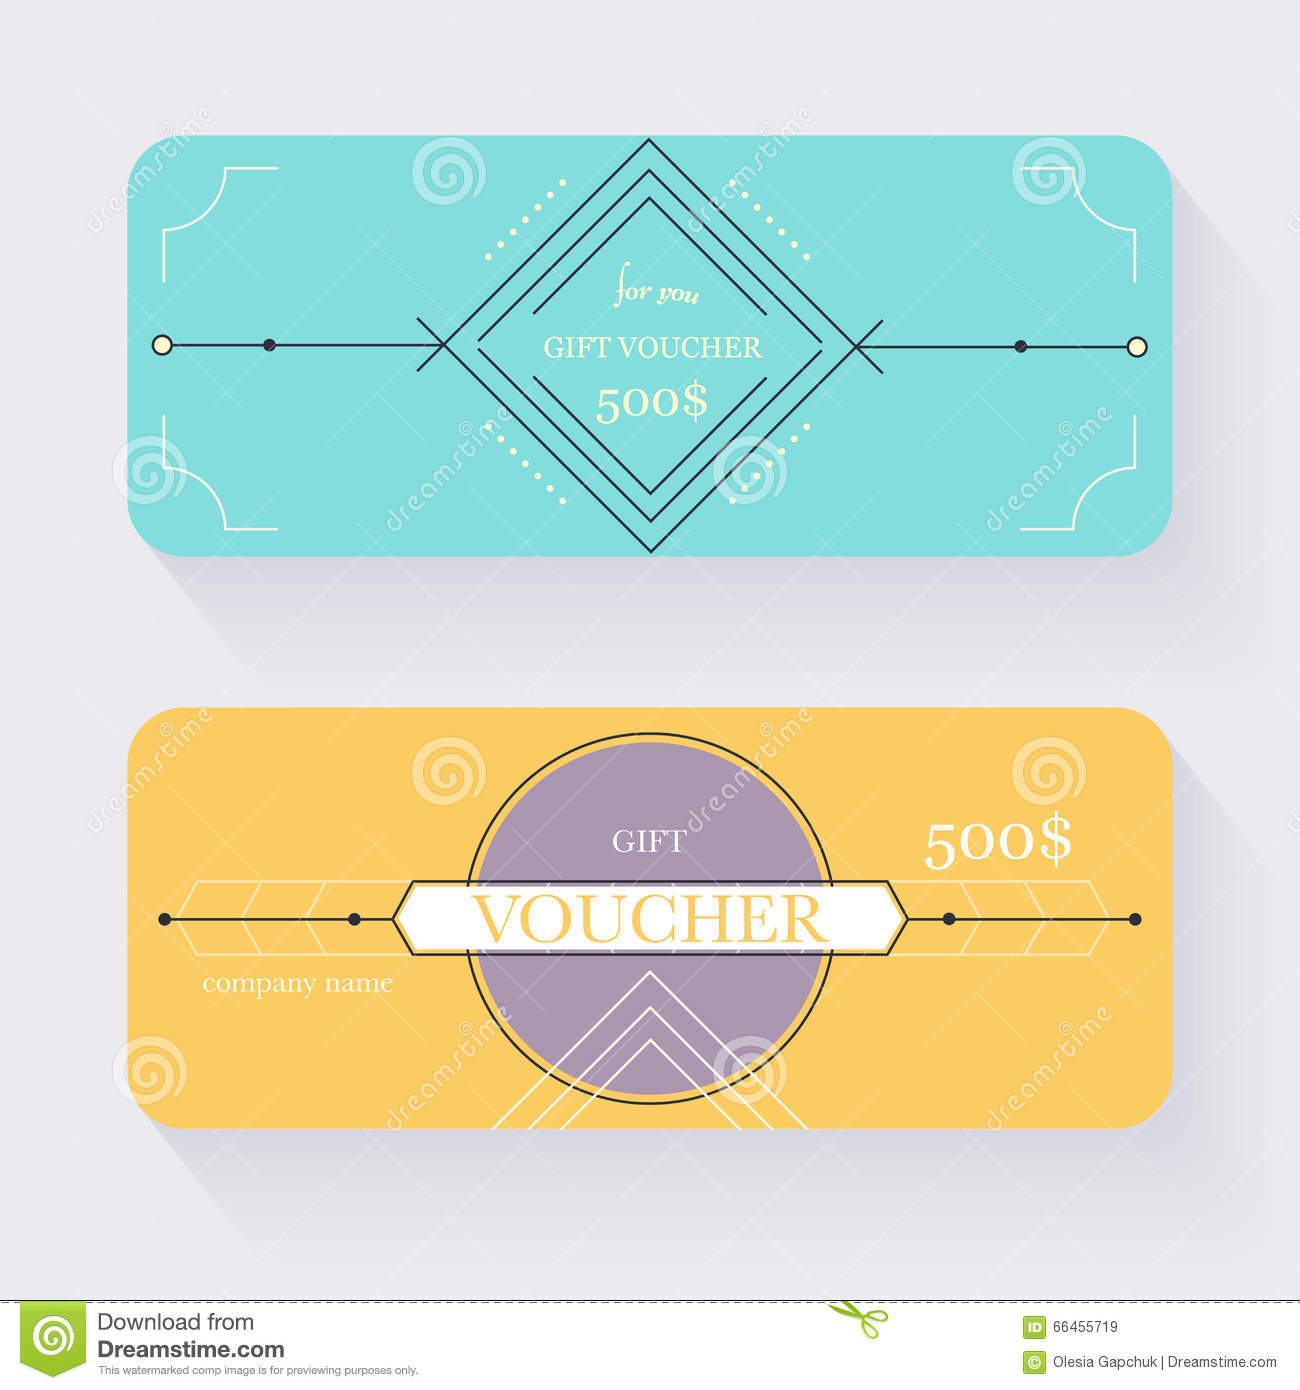 gift voucher template gift certificate background design gift gift voucher template gift certificate background design gift